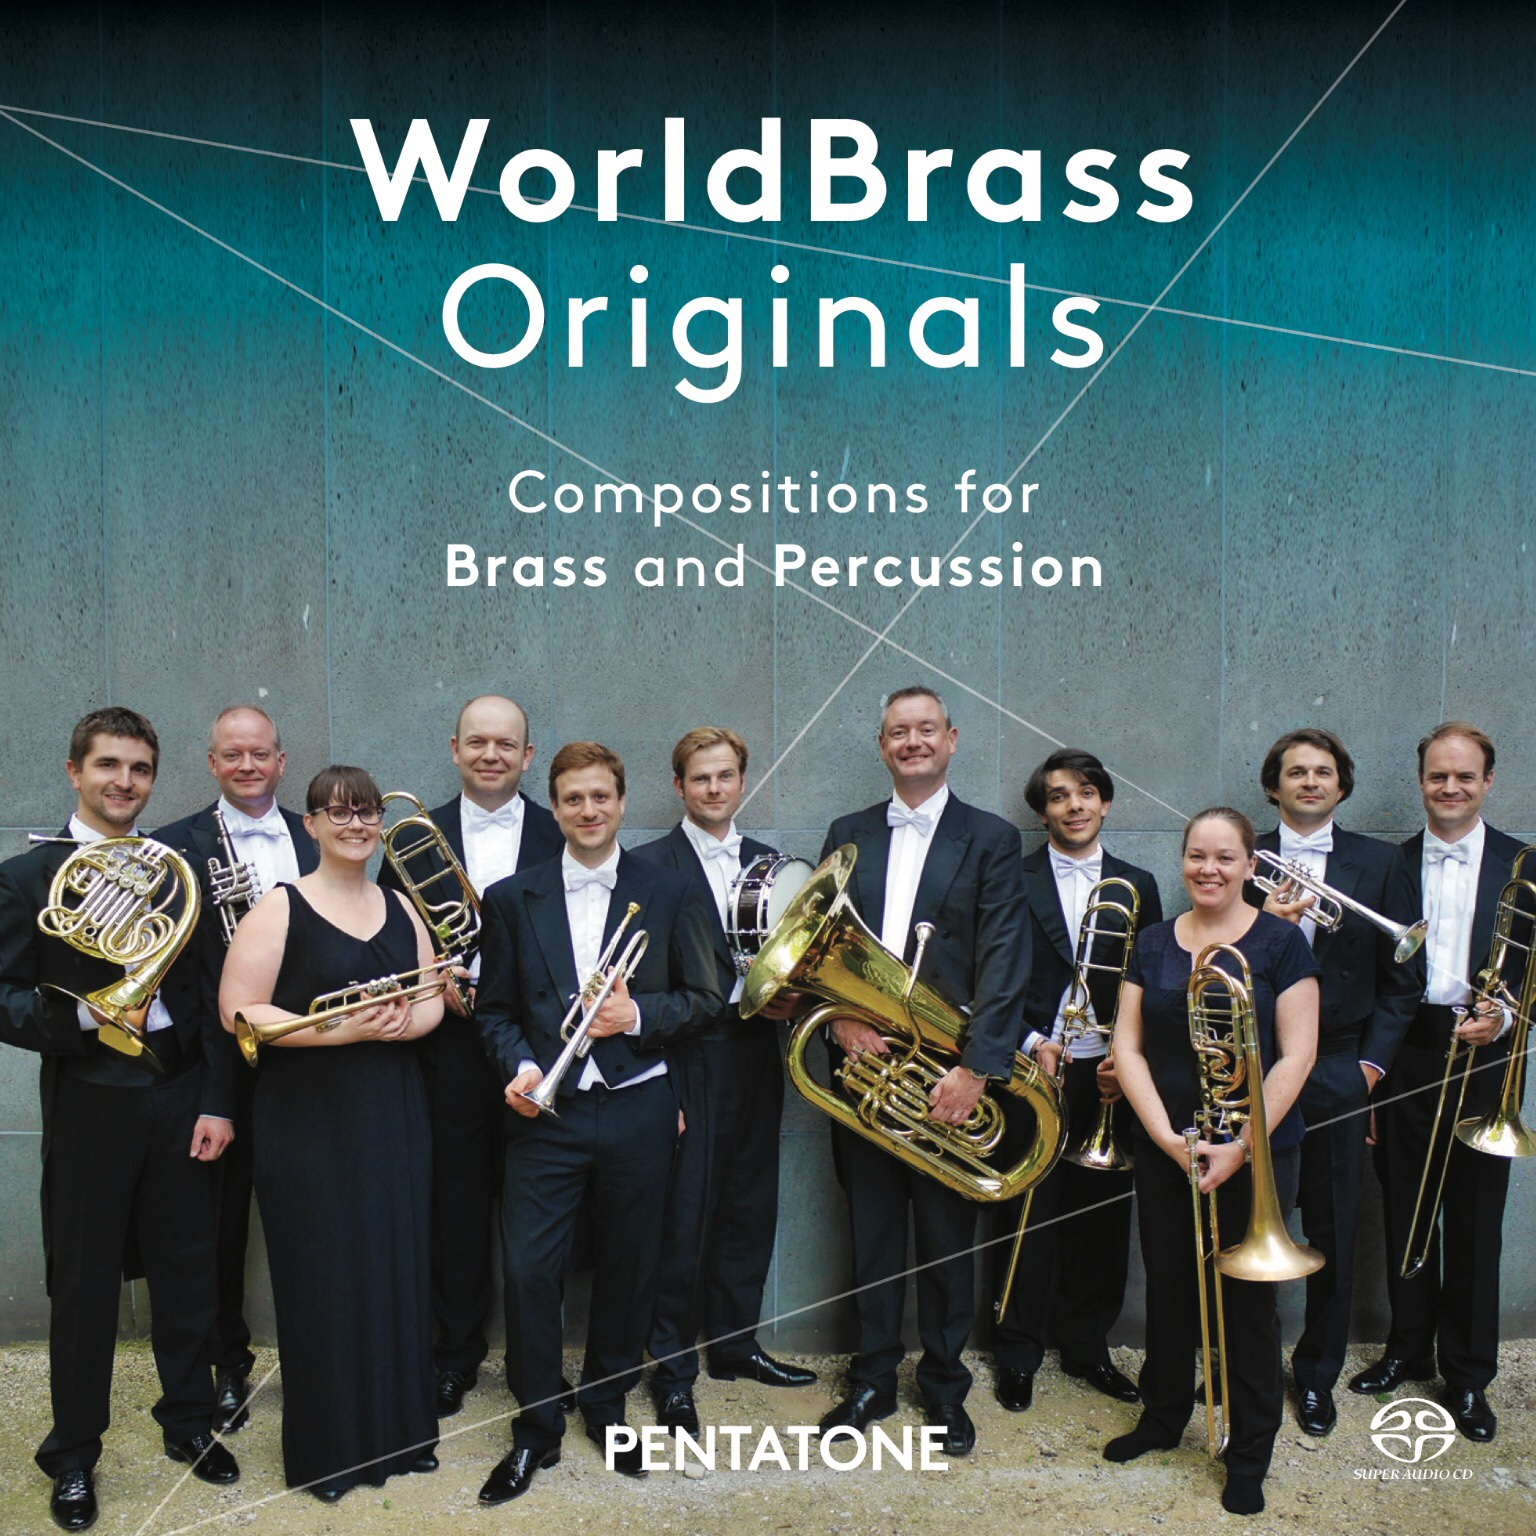 CD-Cover: WorldBrass Originals